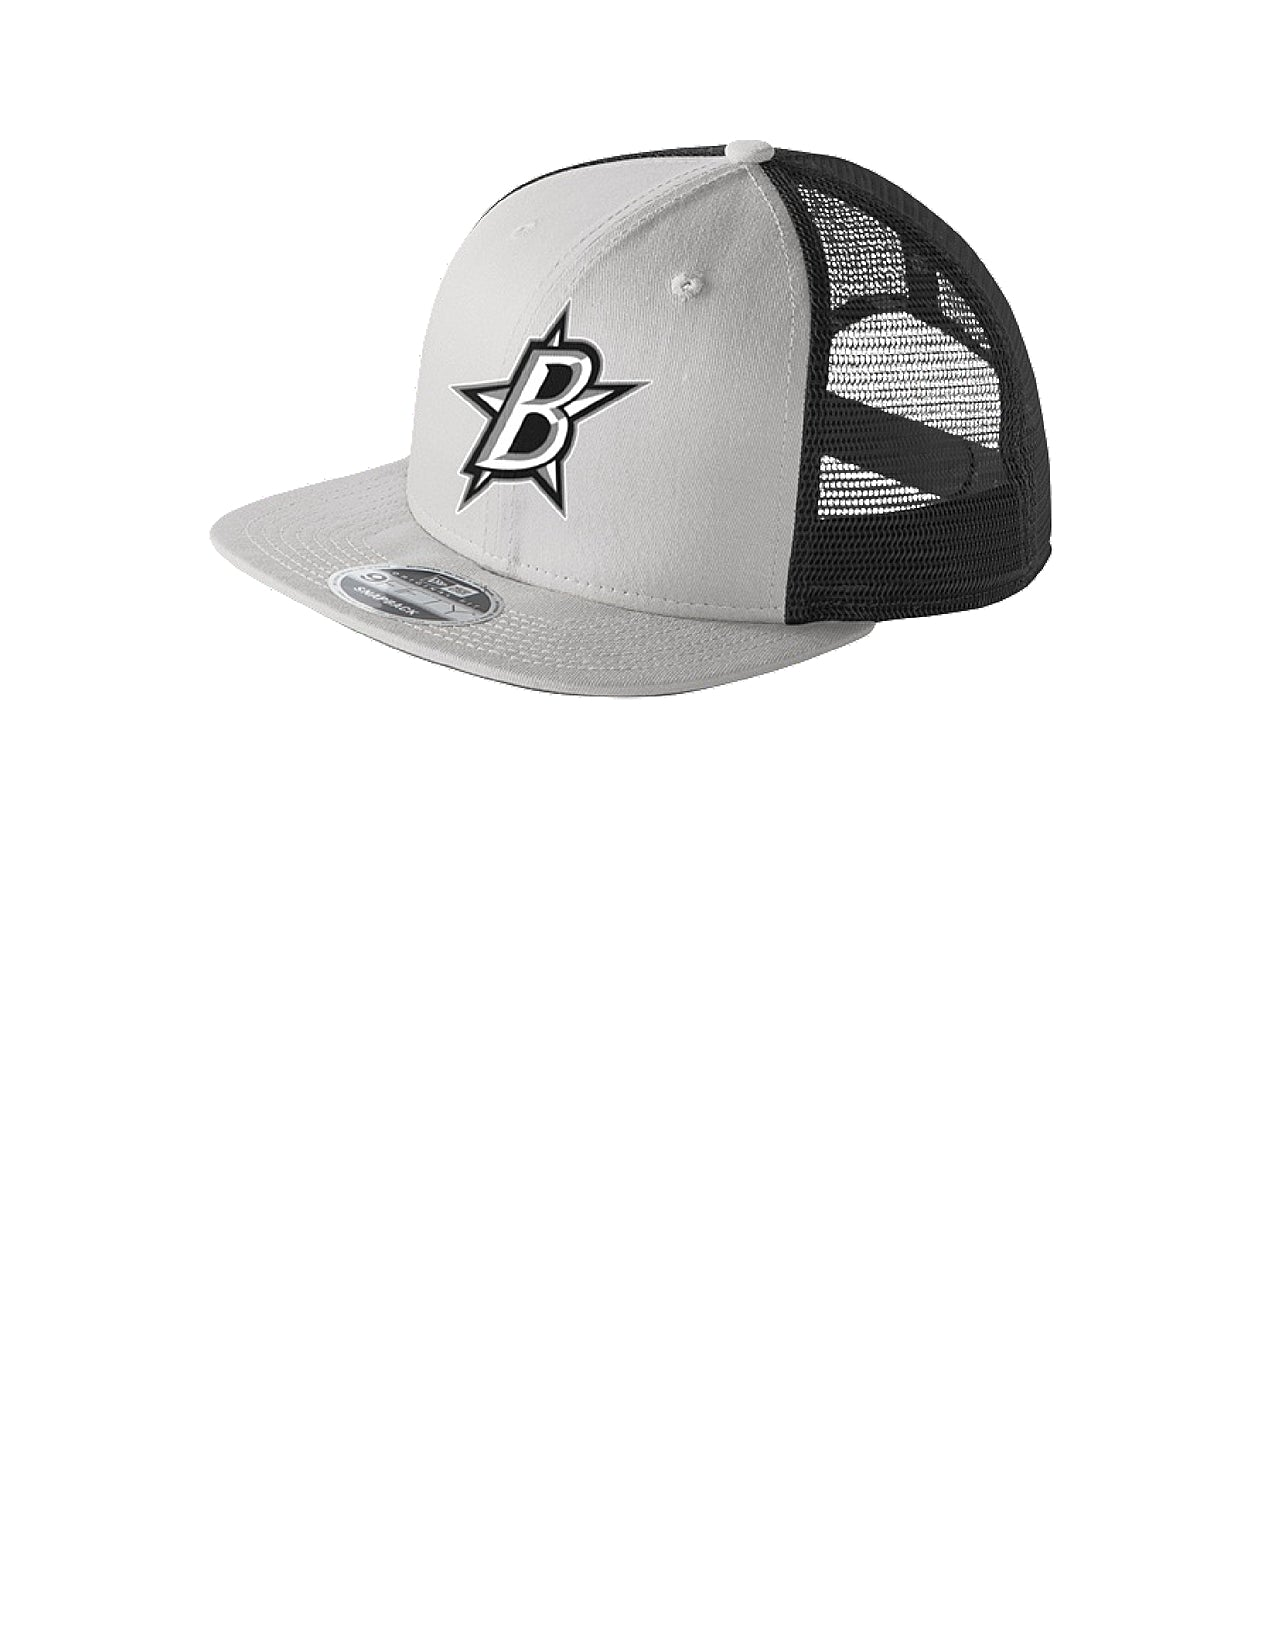 4320e6207cf35 Black Stars New Era® Original Fit Flat Brim Snapback Trucker Cap  Grey/Graphite With Black Stars